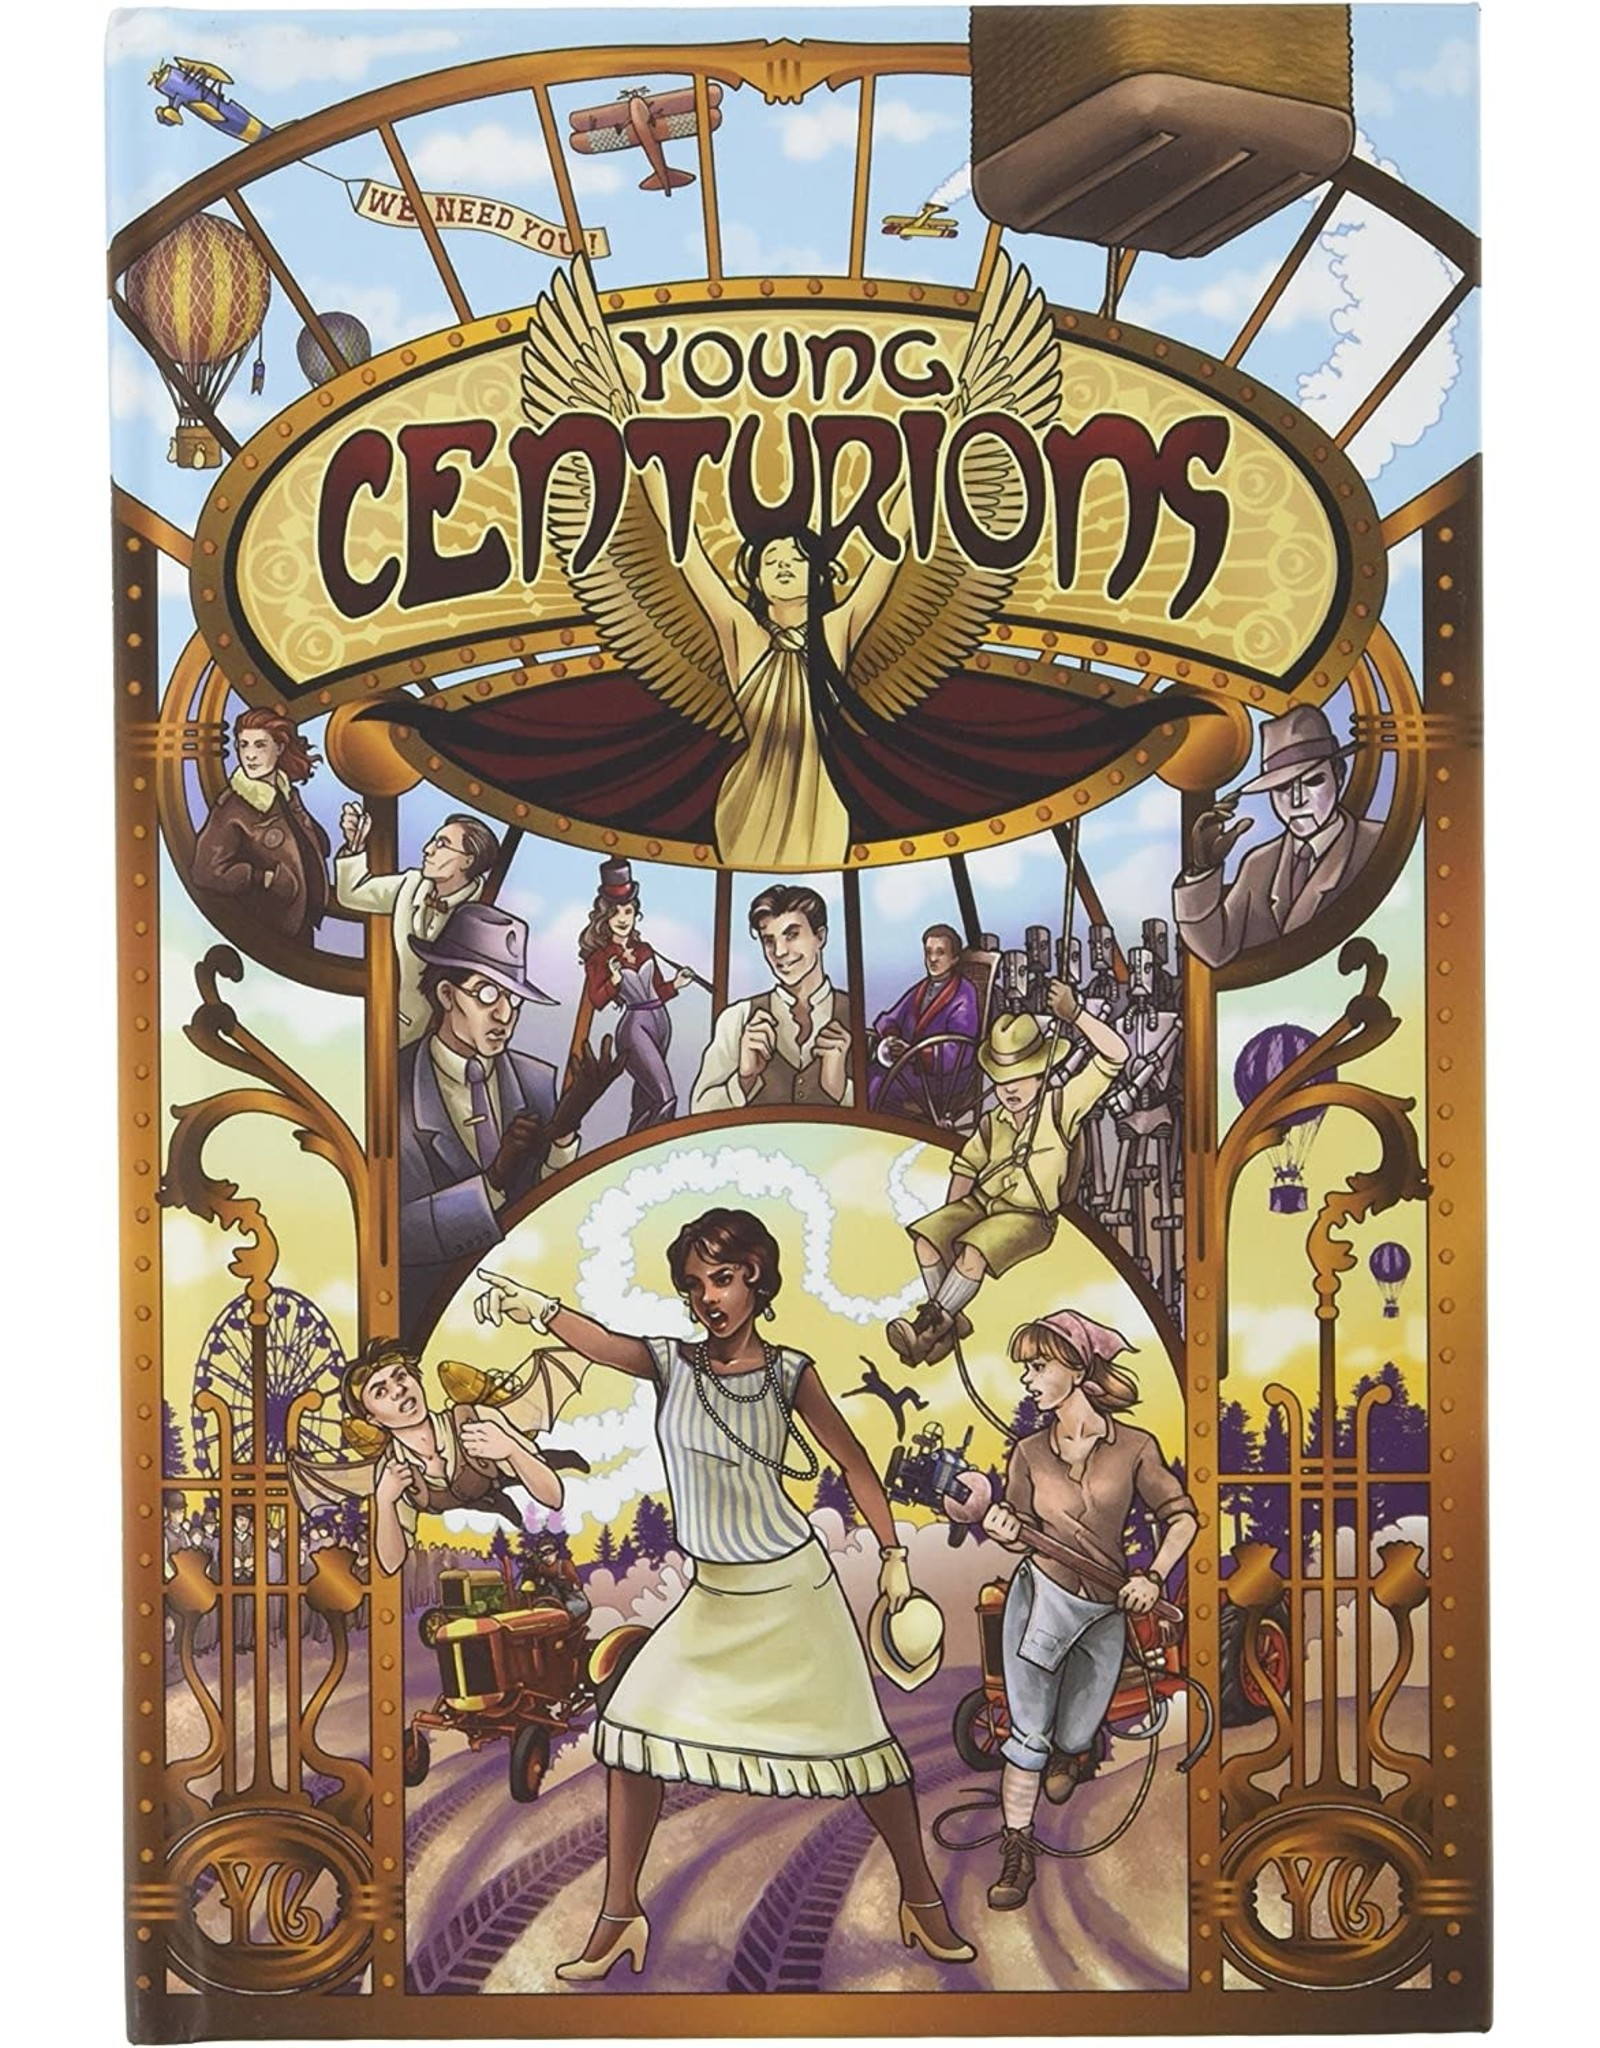 FATE RPG: Young Centurions